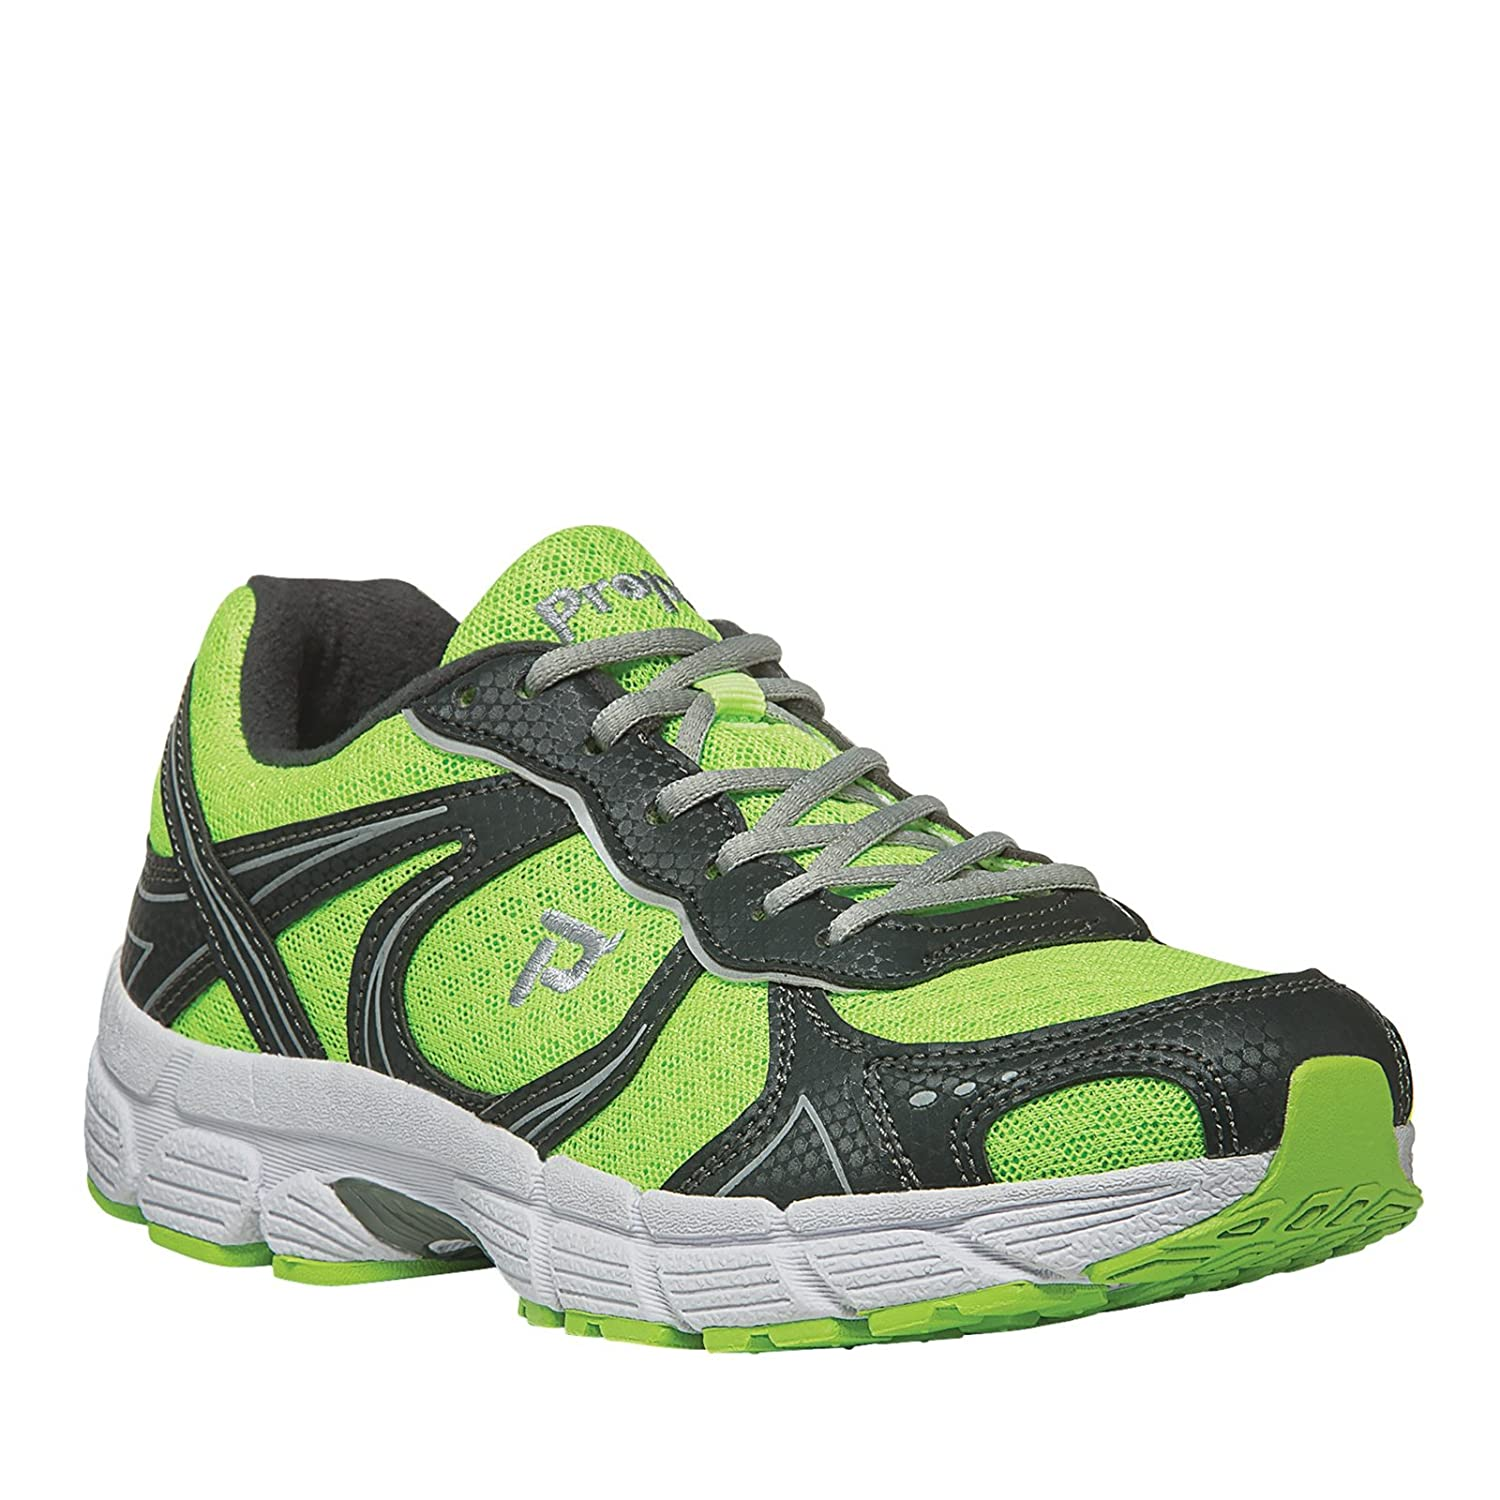 Propet Women's XV550 Walking Shoe B00T9Y470C 8 W US|Lime/Grey